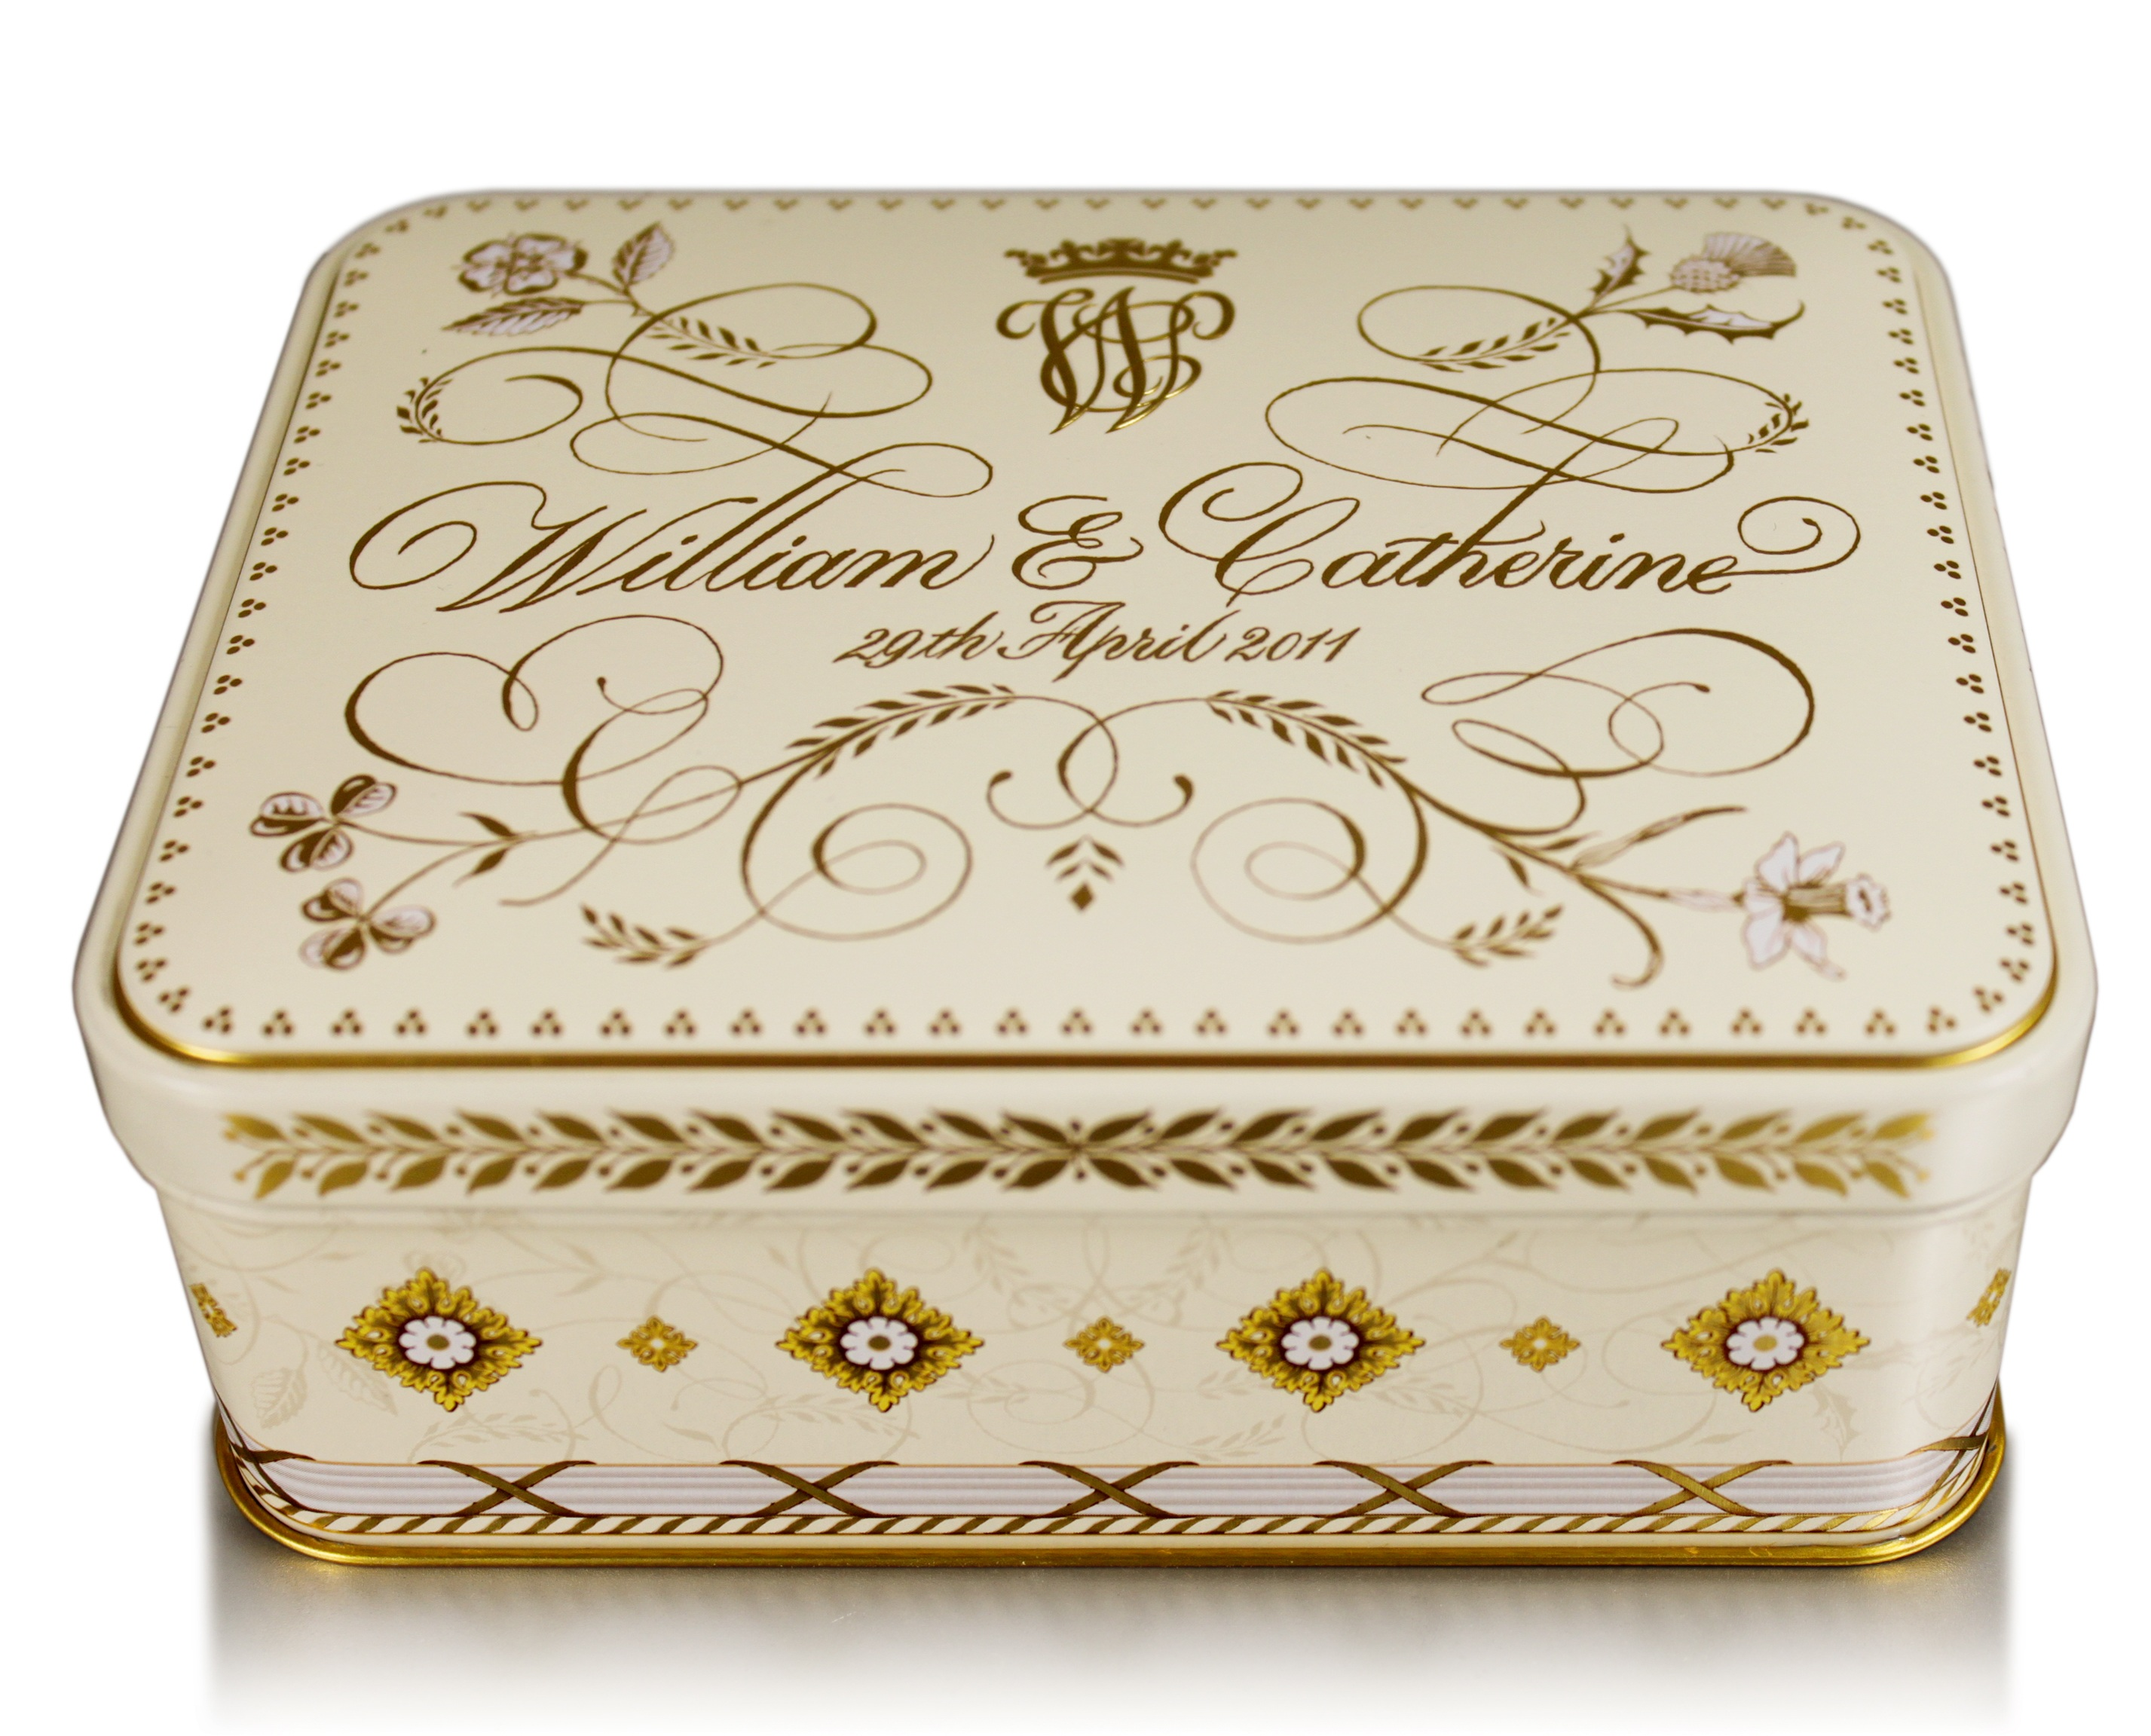 william and kate wedding cake tin special commission for crown at the royal wedding crown 27488